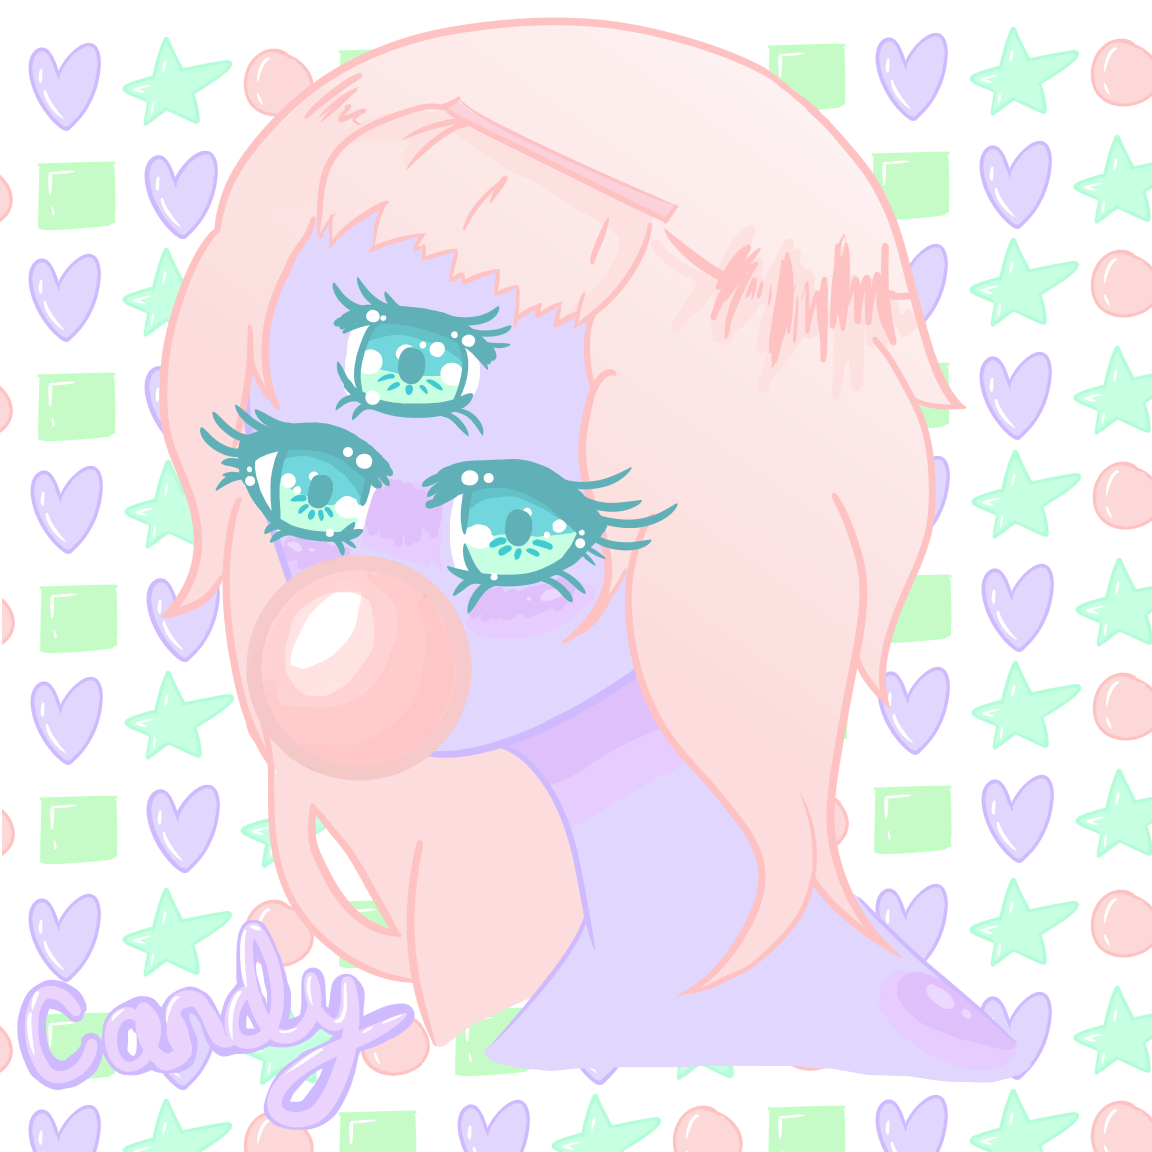 candy kawaii anime girl monster three eyed drawing digital art.